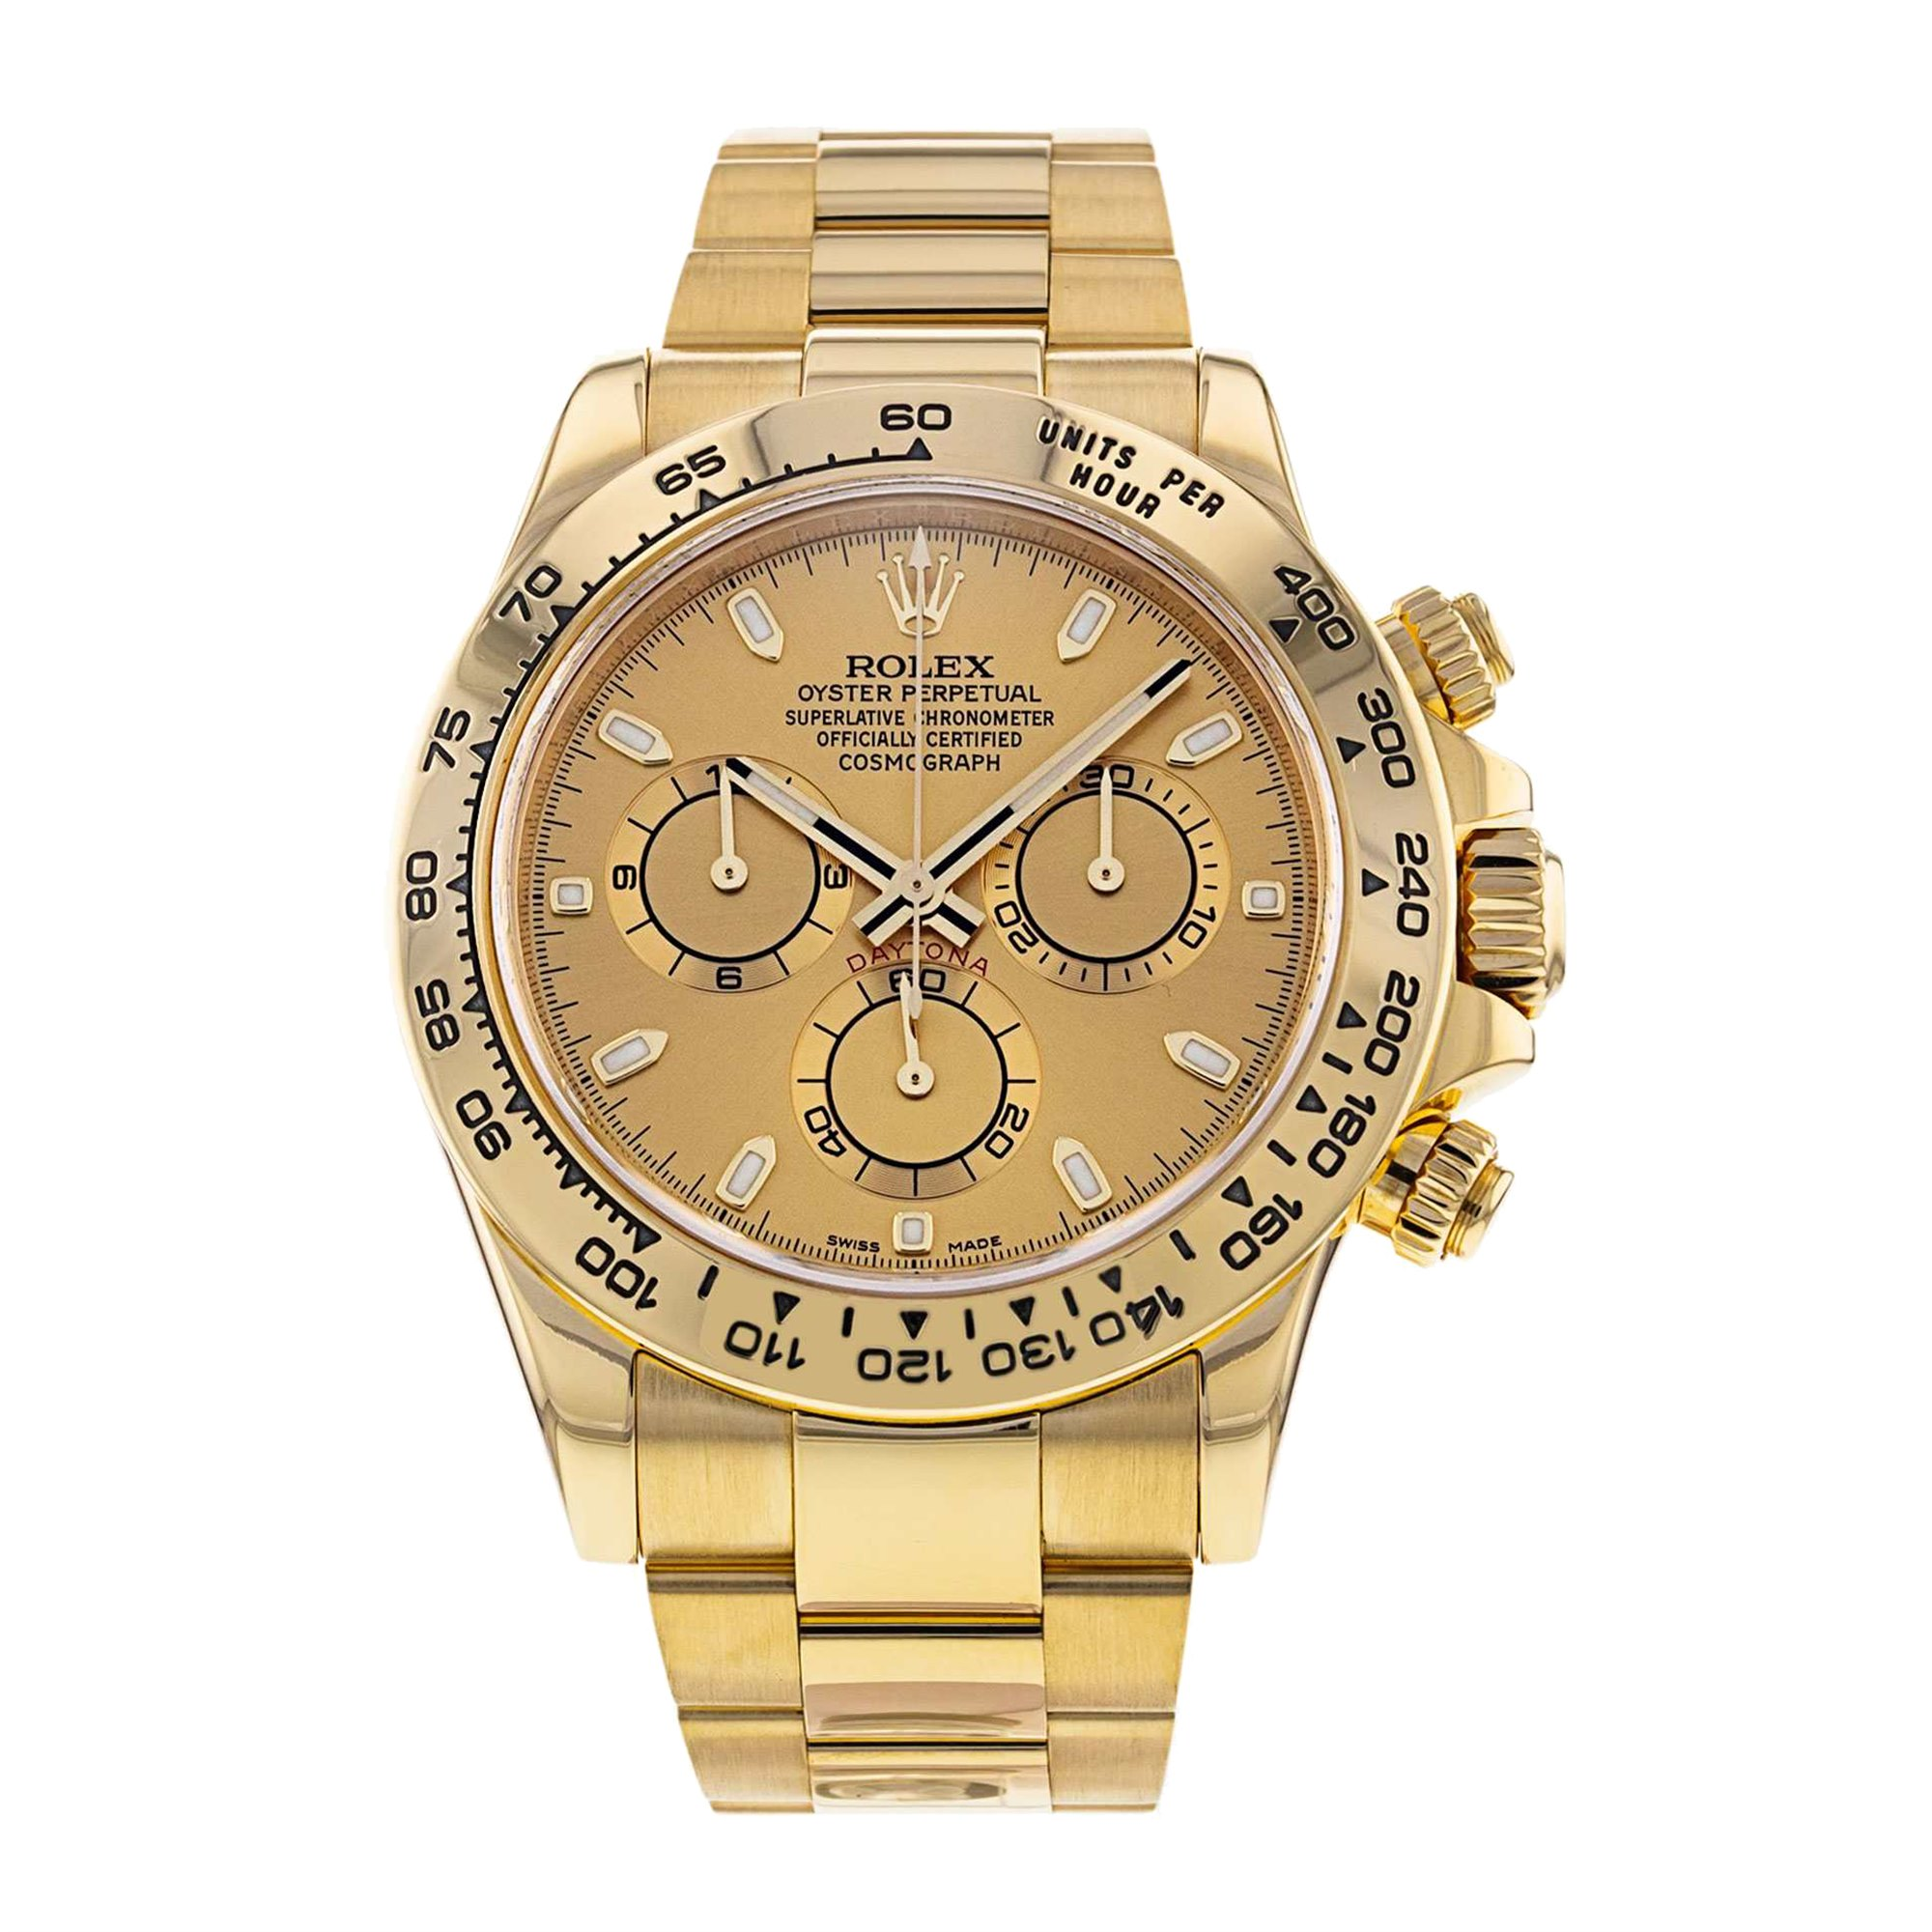 Rolex Daytona Chronograph Yellow Gold 116508